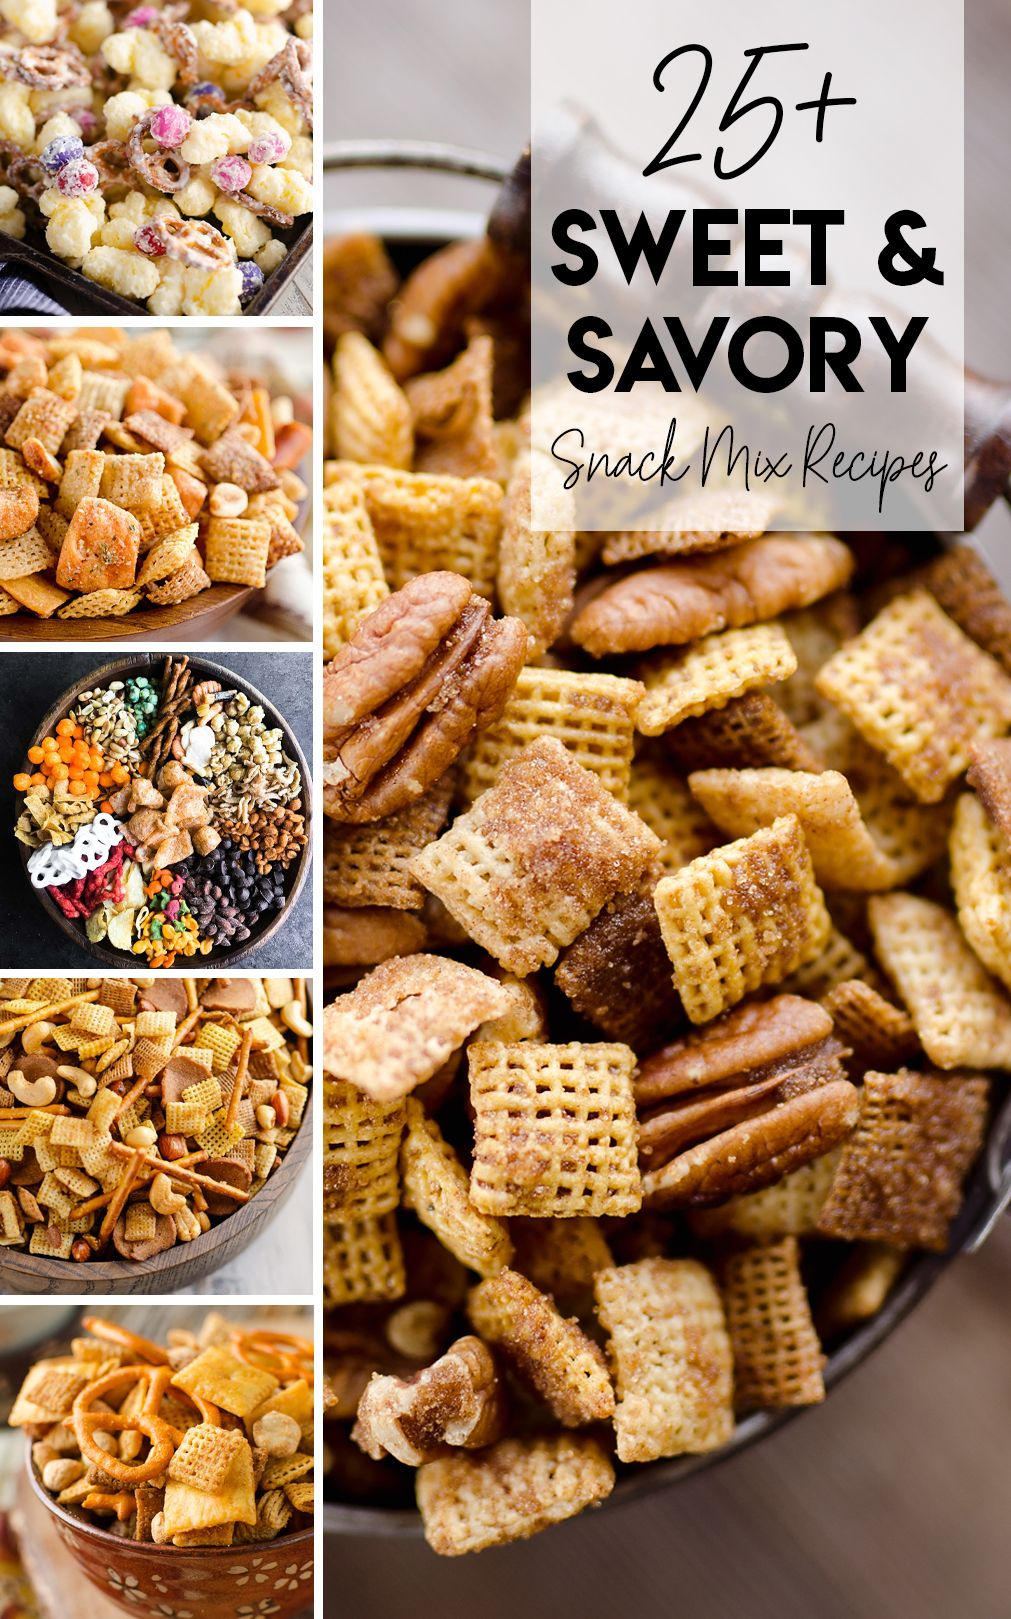 Sweet & Savory Snack Mix Recipes are perfect for a game